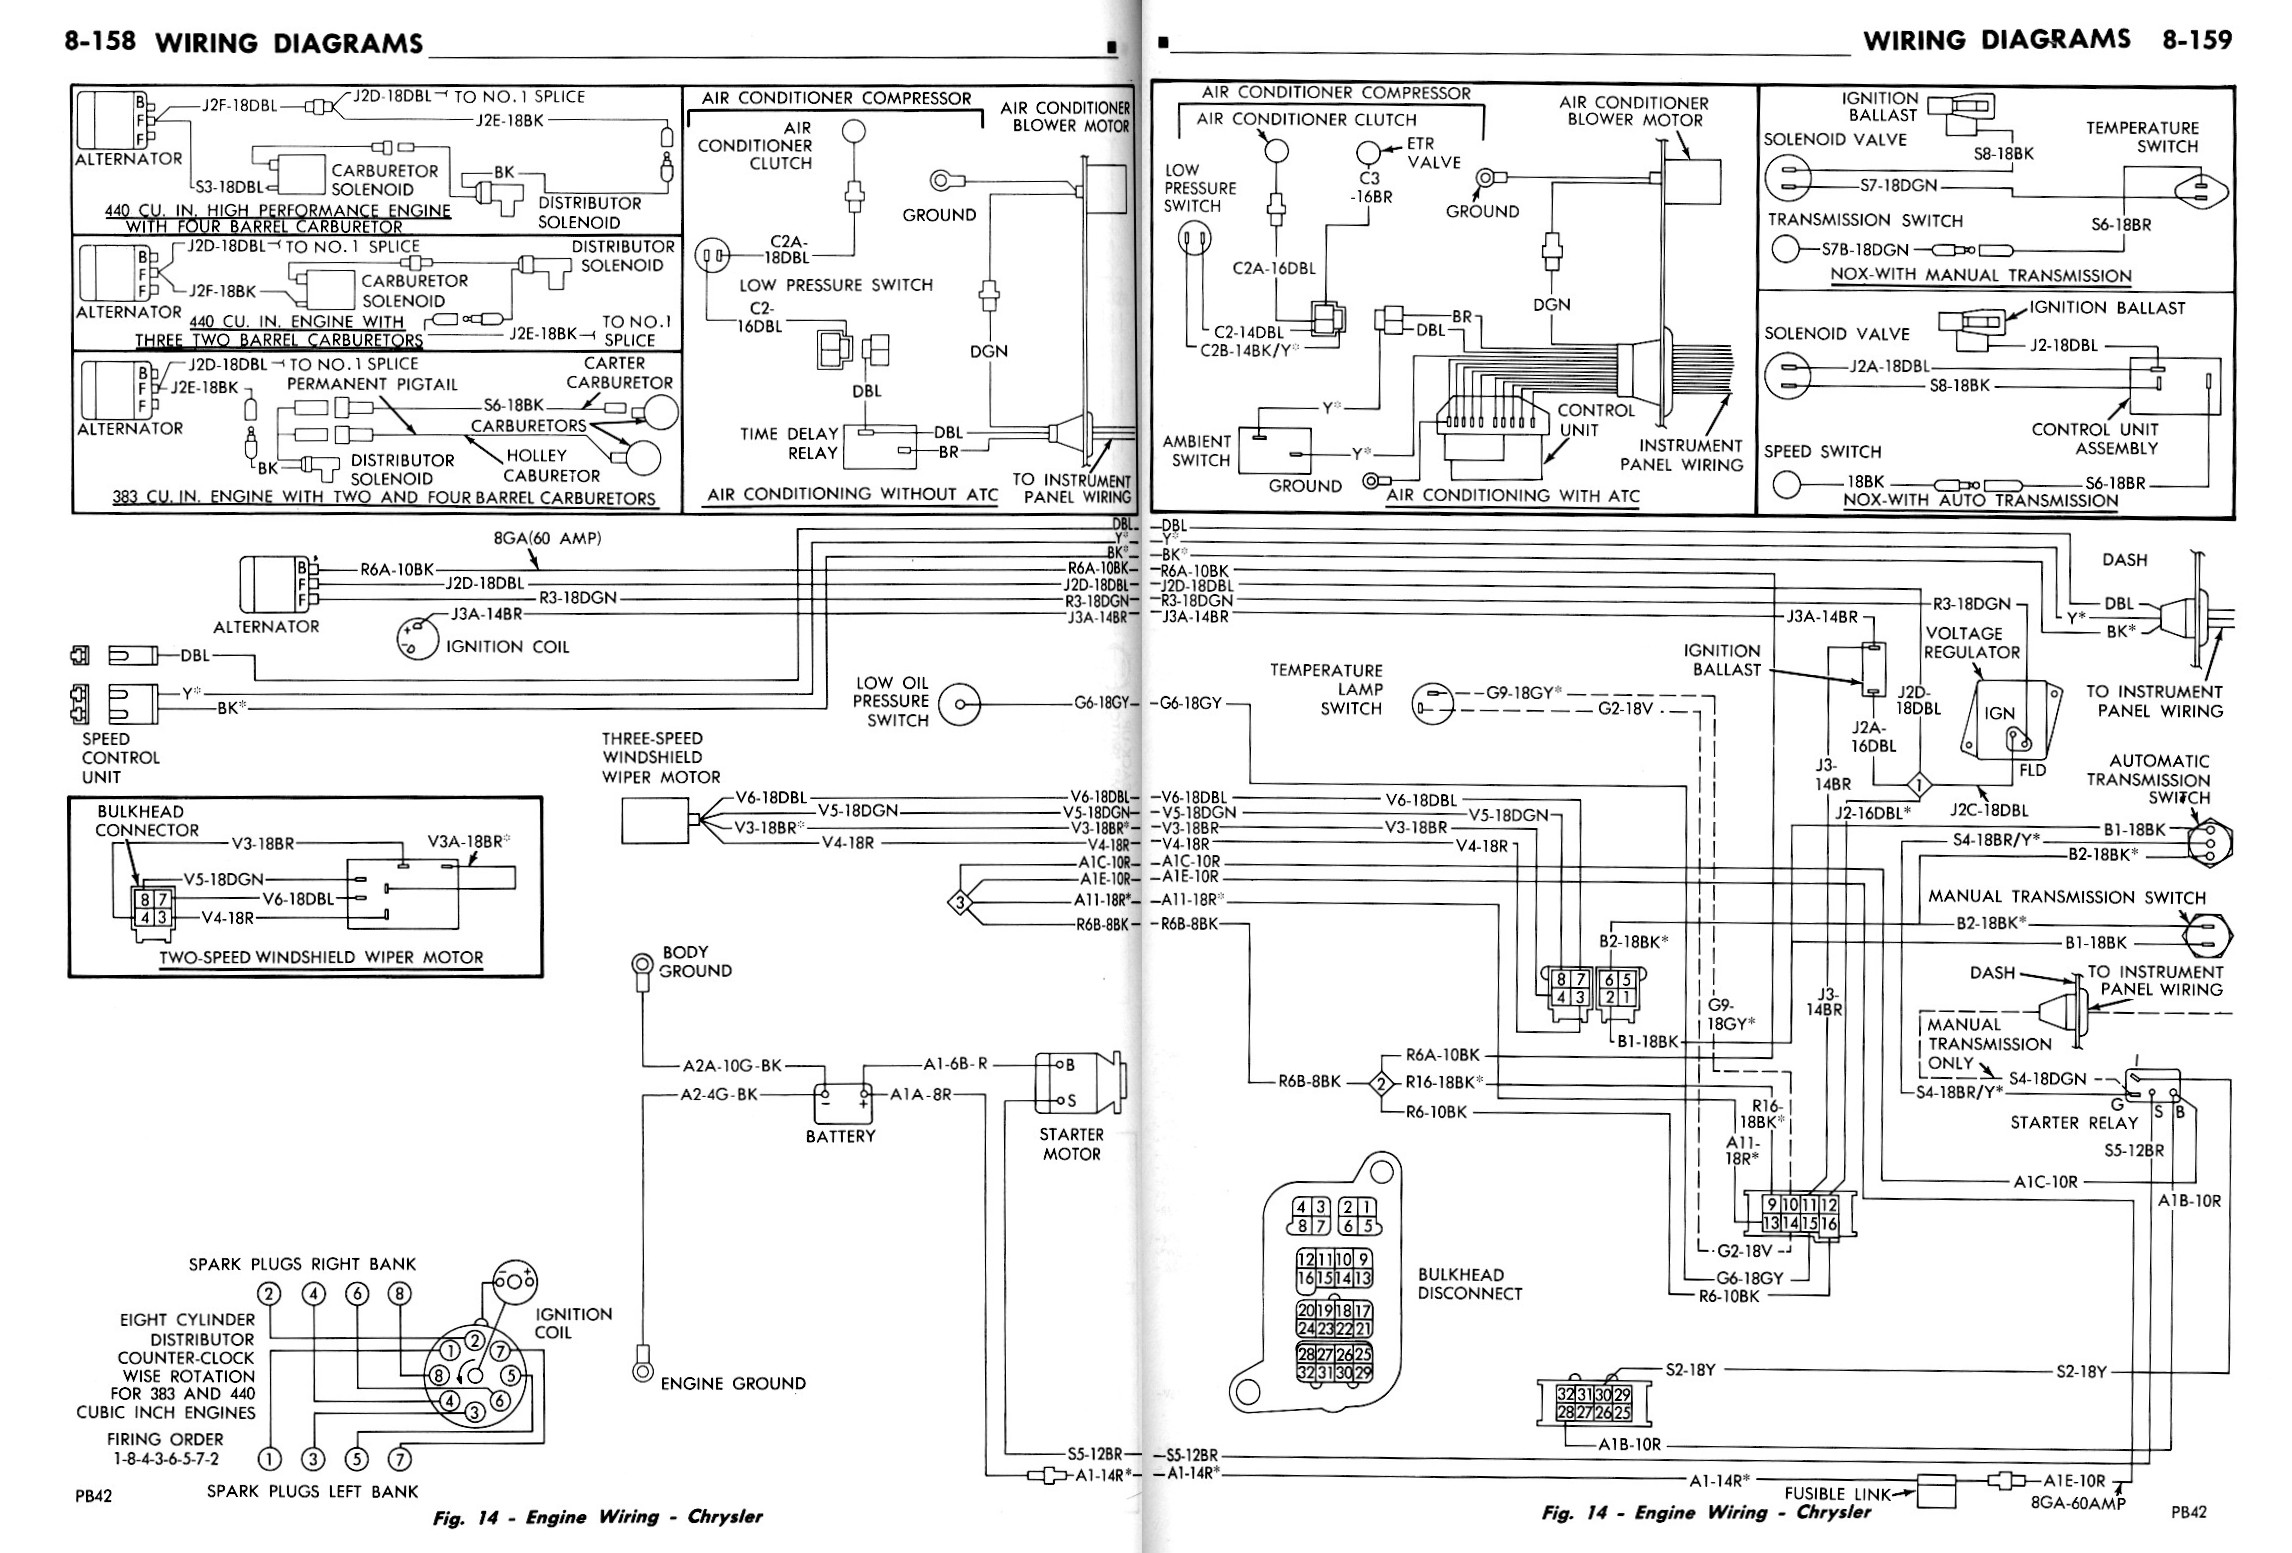 Chrysler Voltage Regulator Wiring Diagram Internal Of External